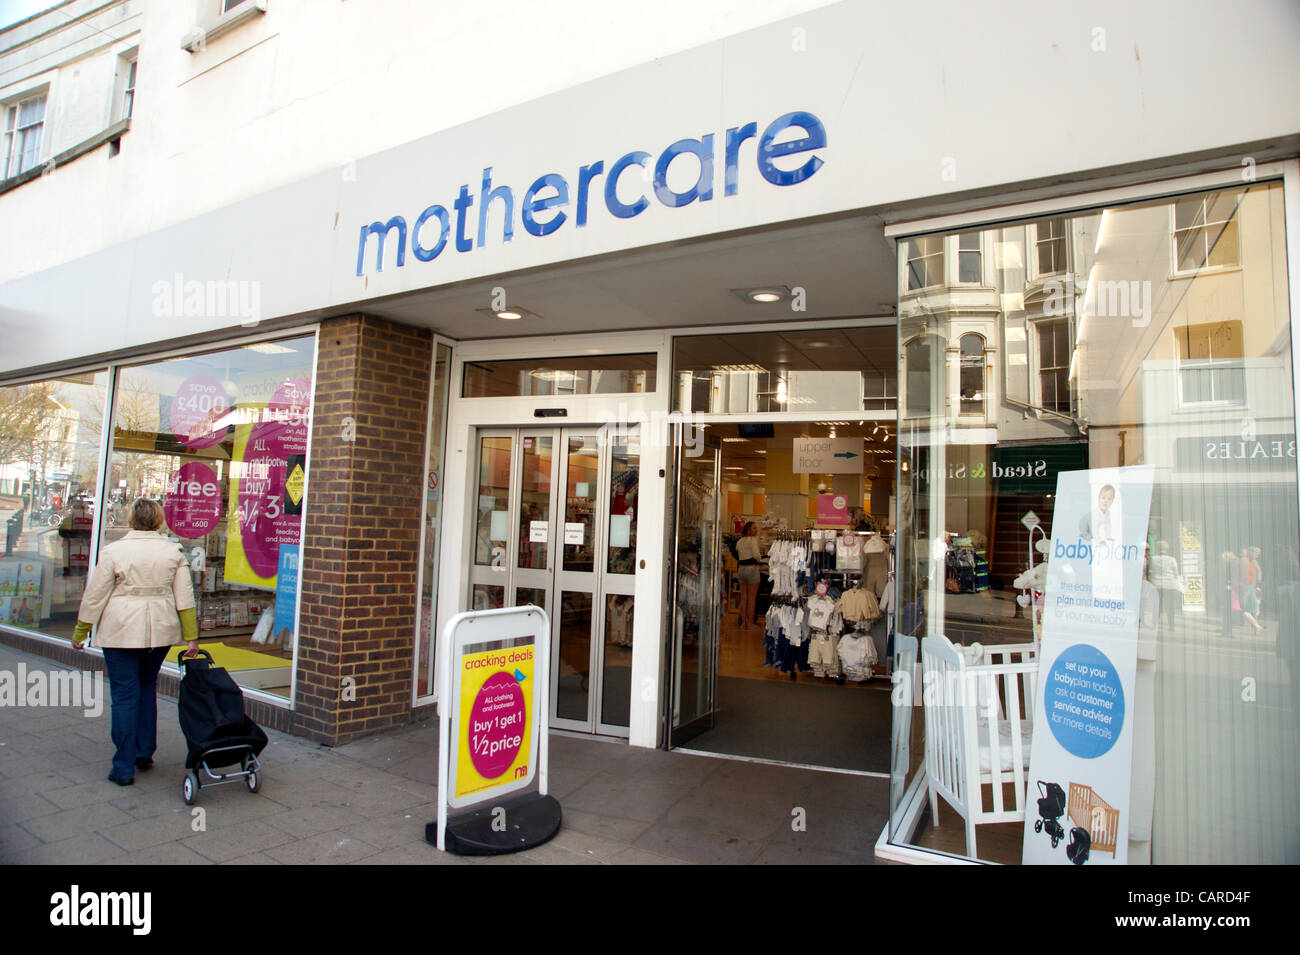 Mothercare retailer shop in the high street Worthing West Sussex (one of the many retailers now closed on the high - Stock Image